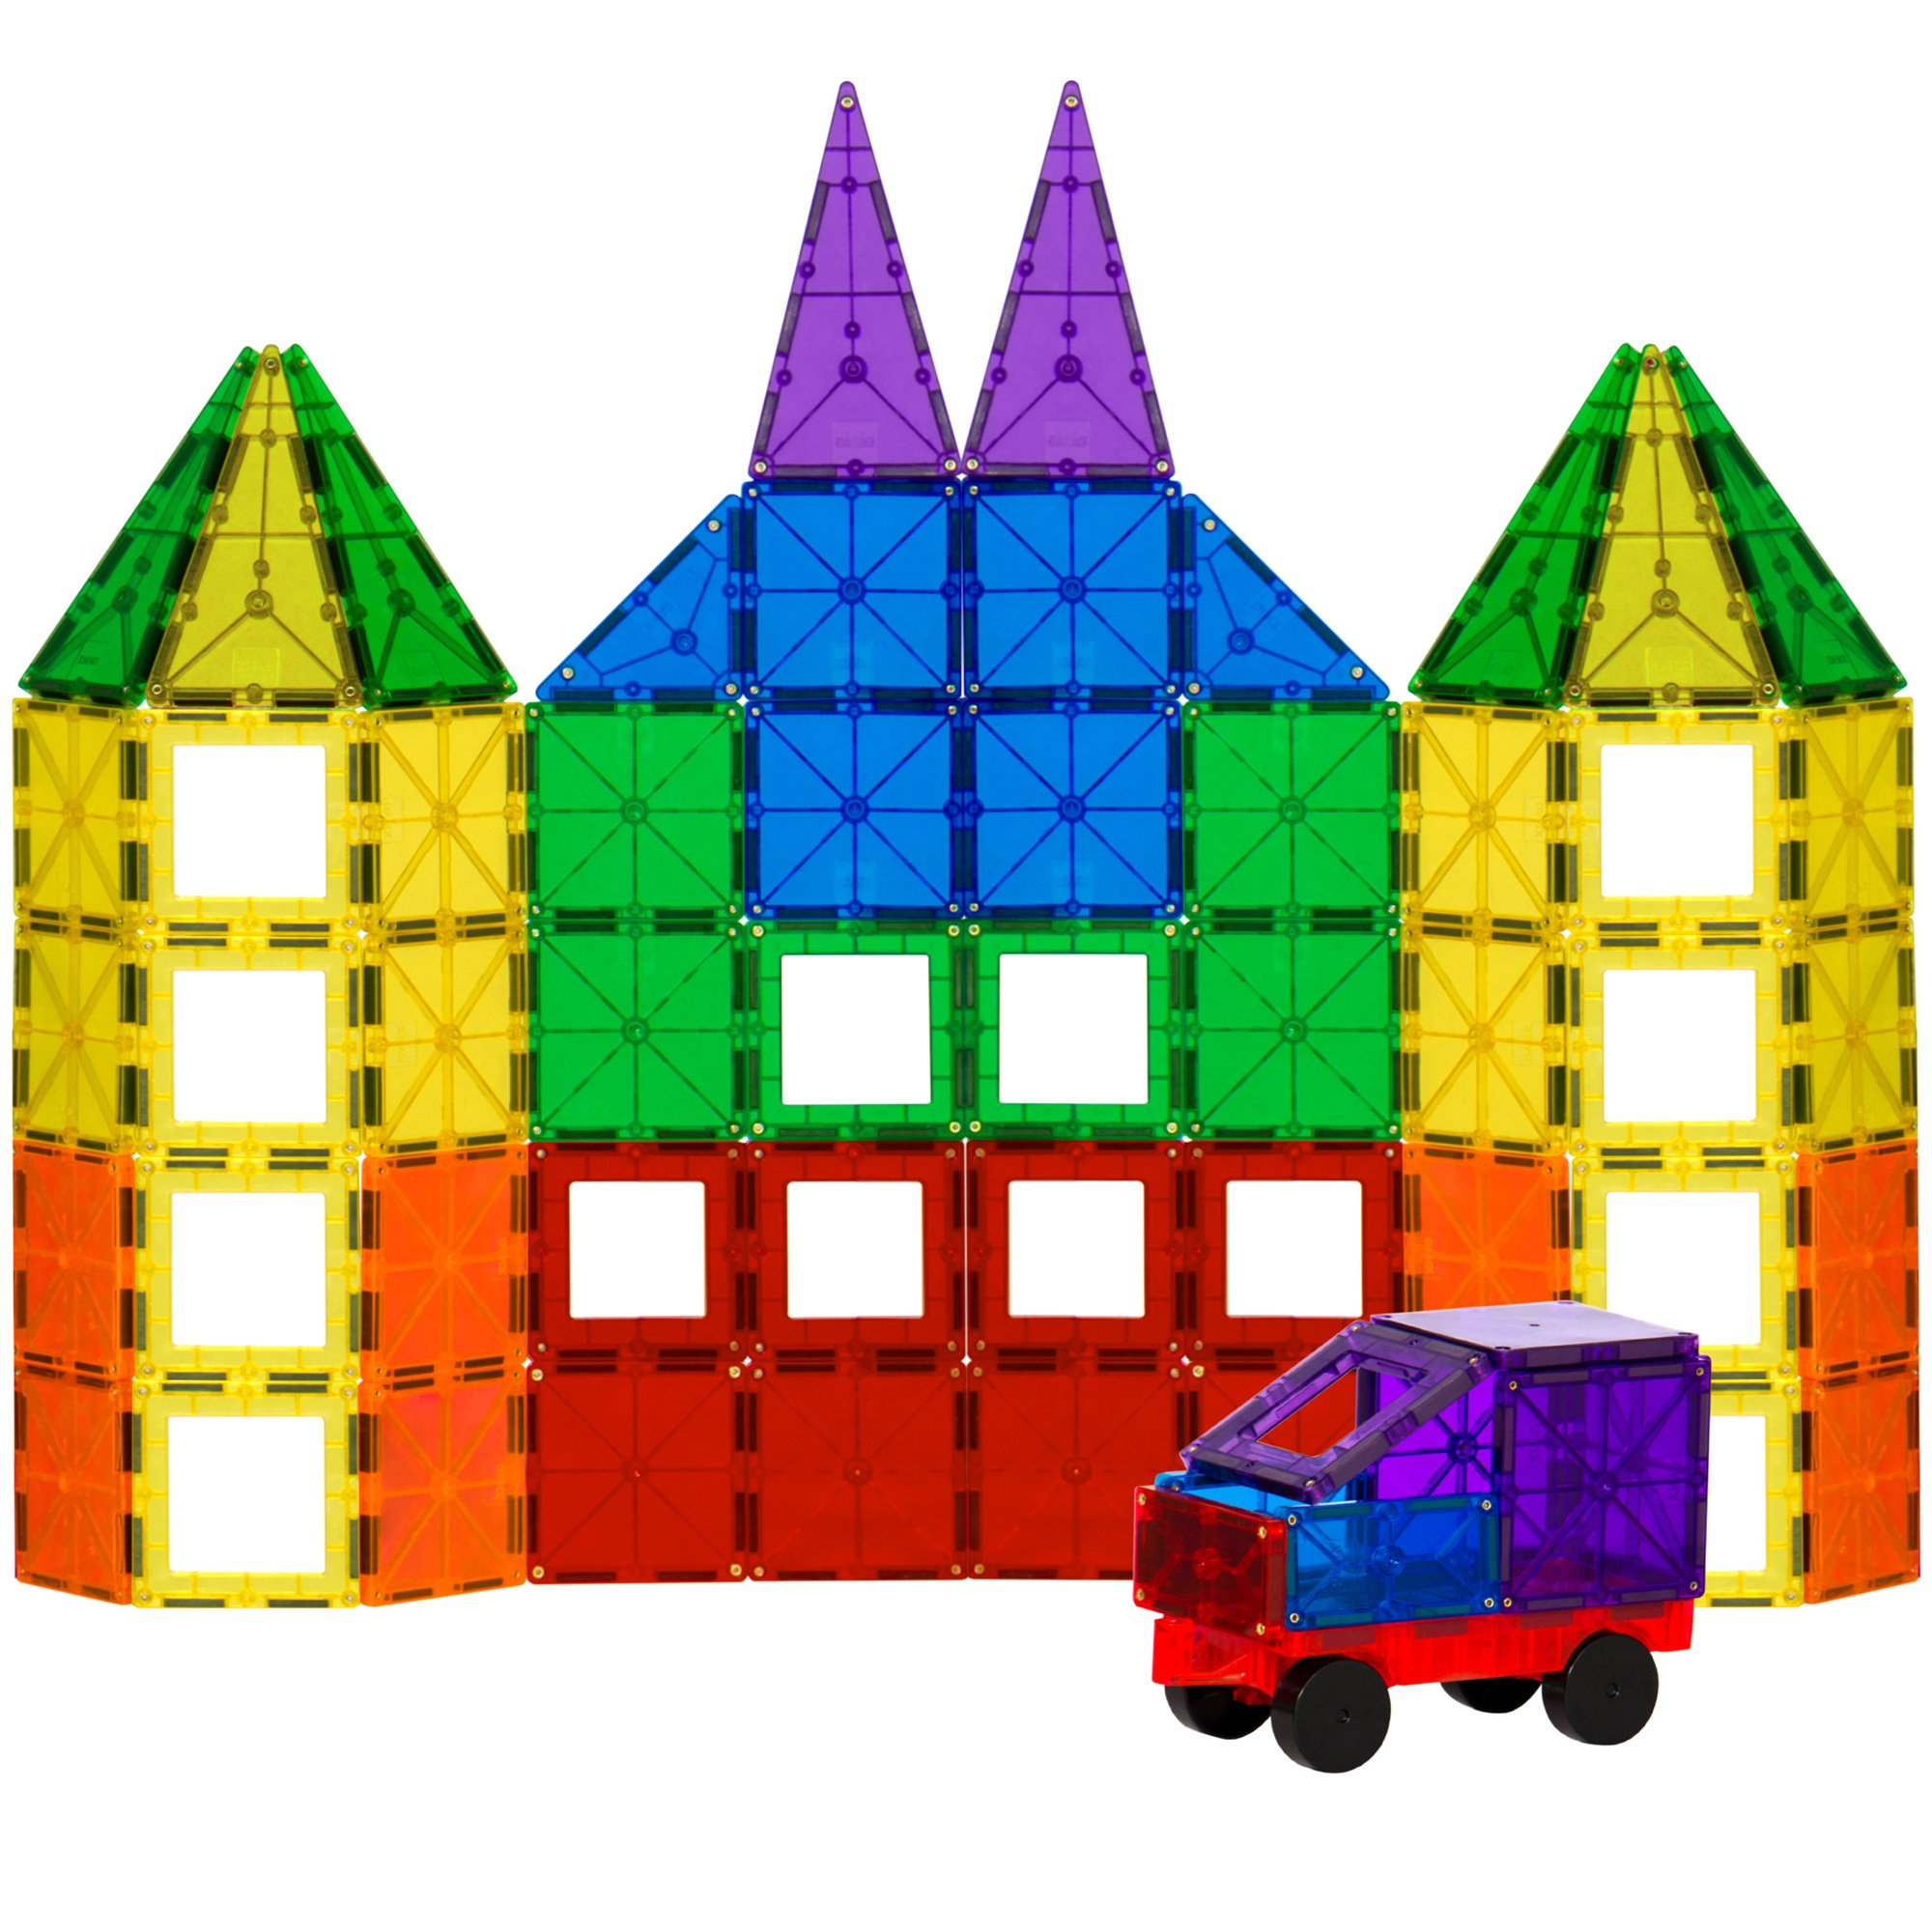 Best Choice Products 100-Piece Transparent Rainbow Magnetic Building Geometric Tiles for Fun, Learning, Creative and Motor Skill Development w/ Wagon and Carrying Case - Multi